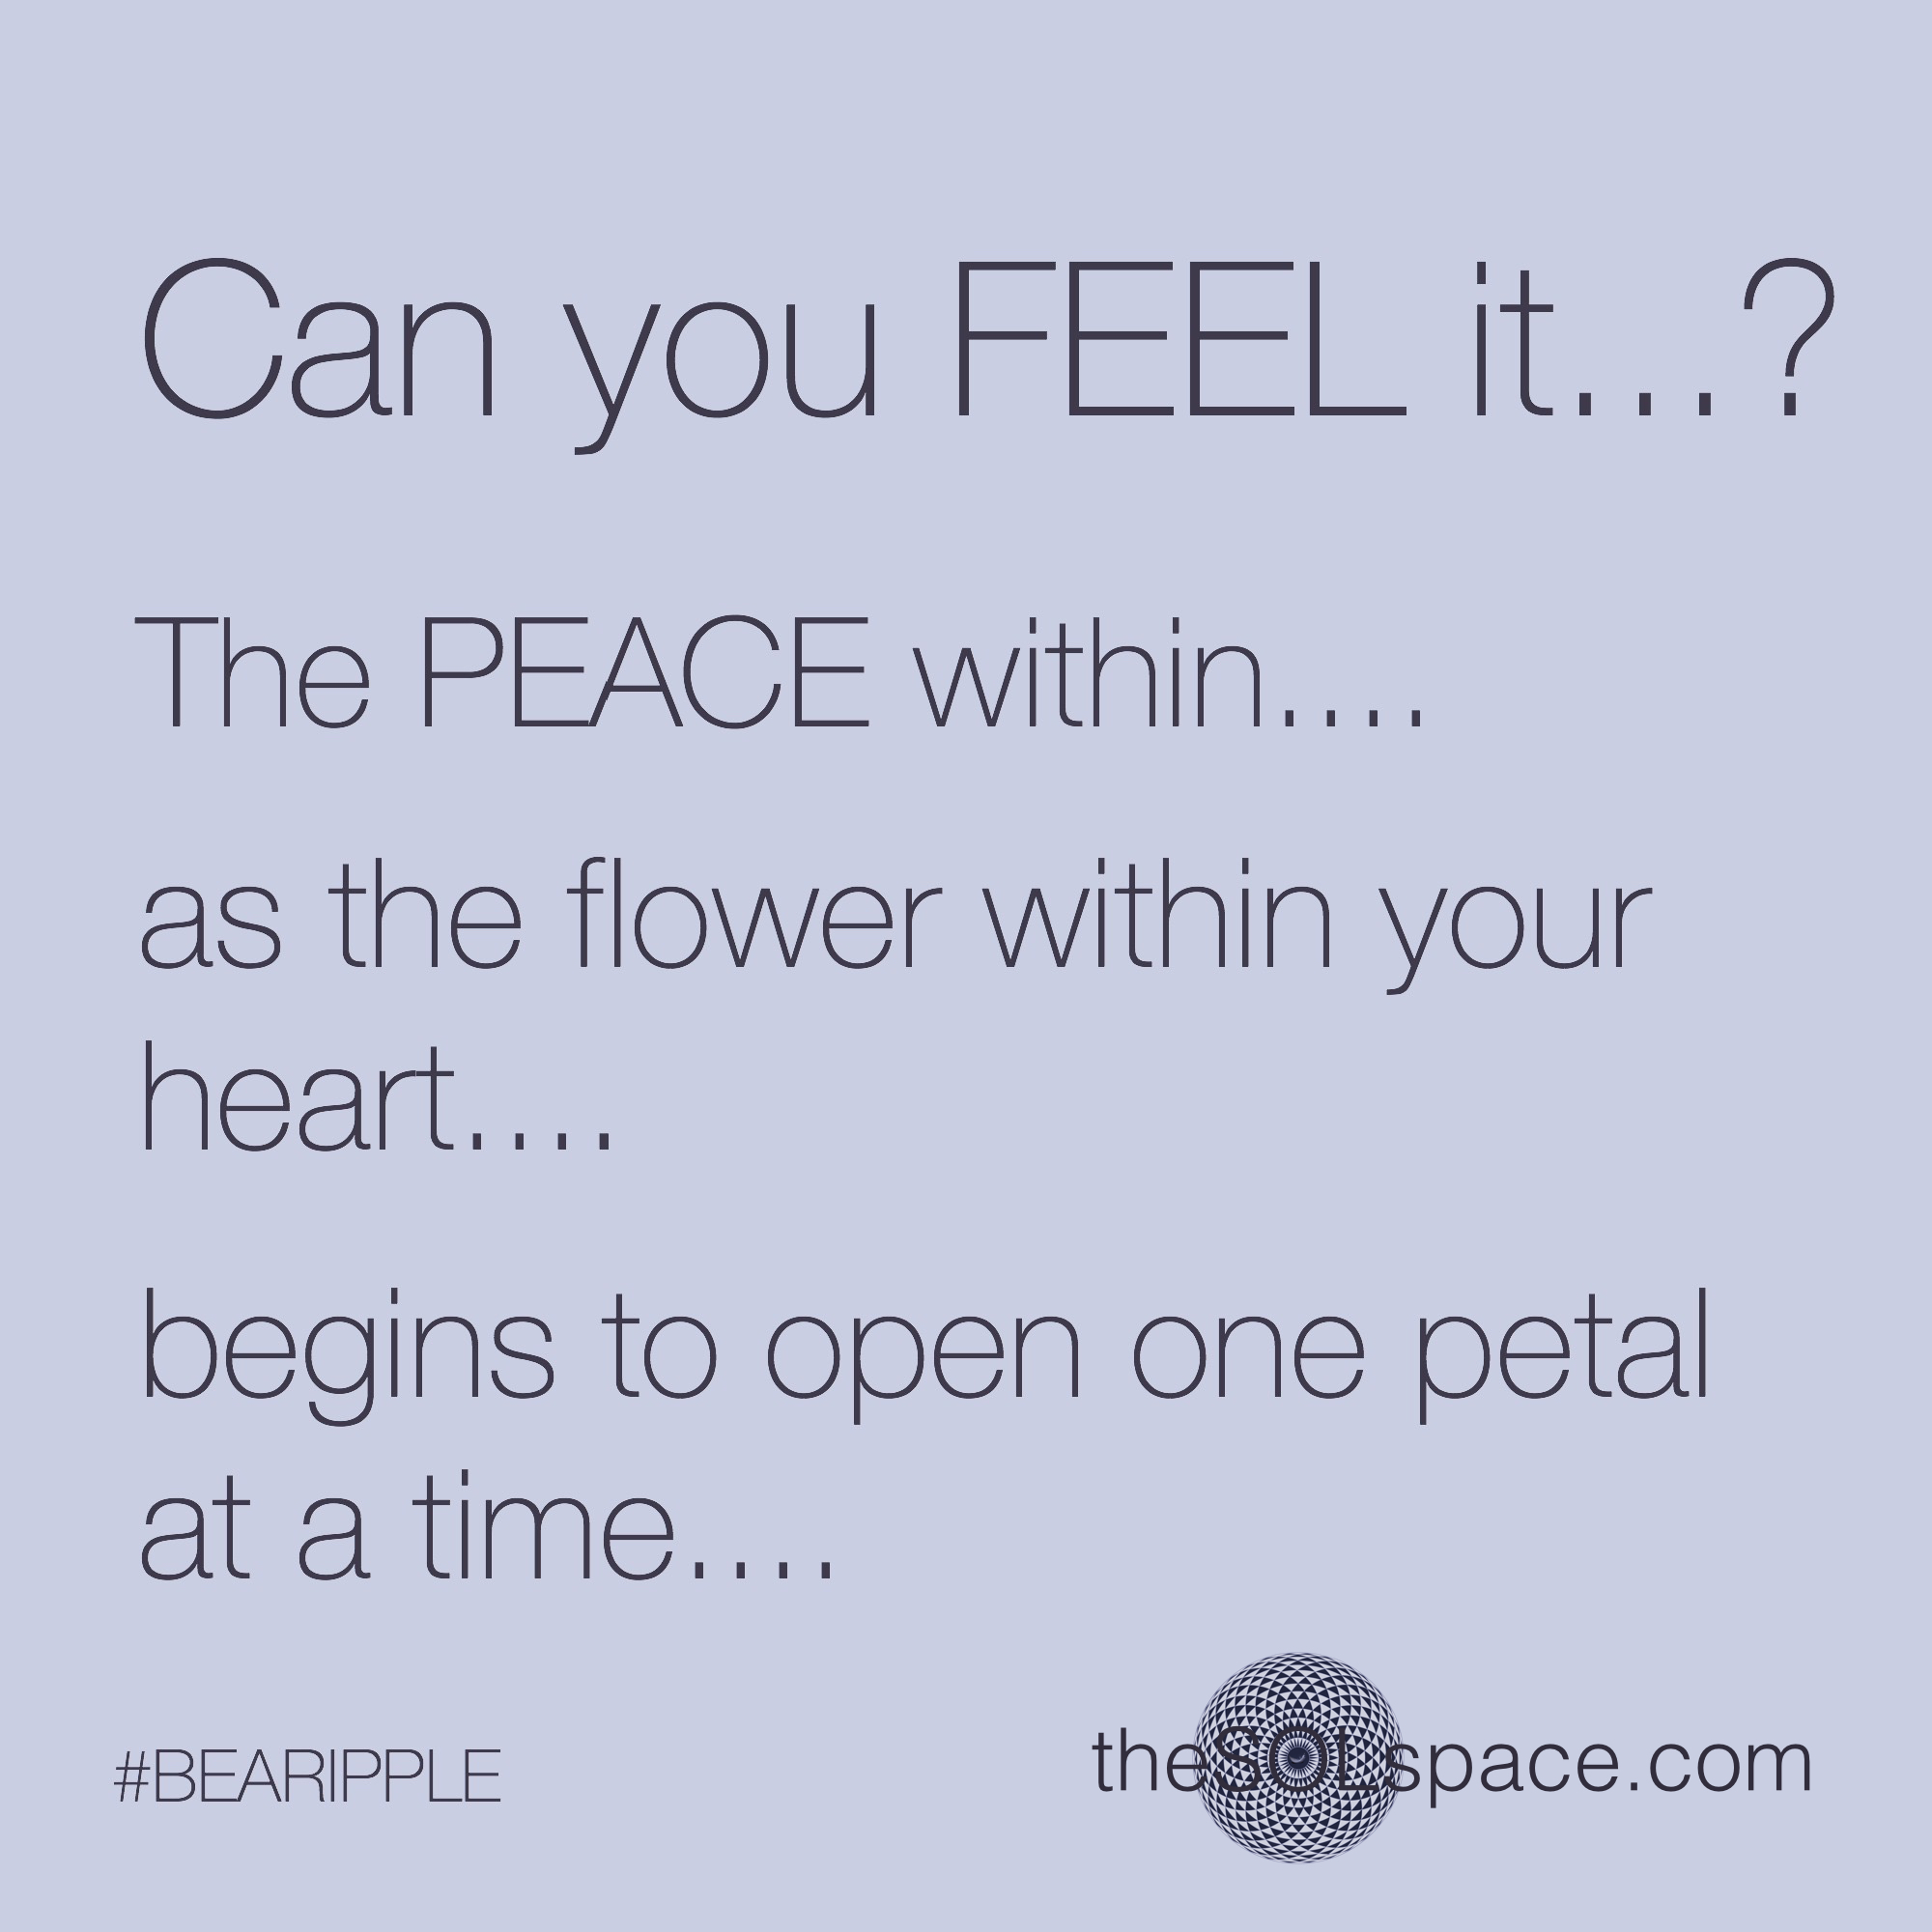 #BeARipple @theSOLspace Can you FEEL it...? The peace within..as the flower with your heart..begins to open one petal at a time...